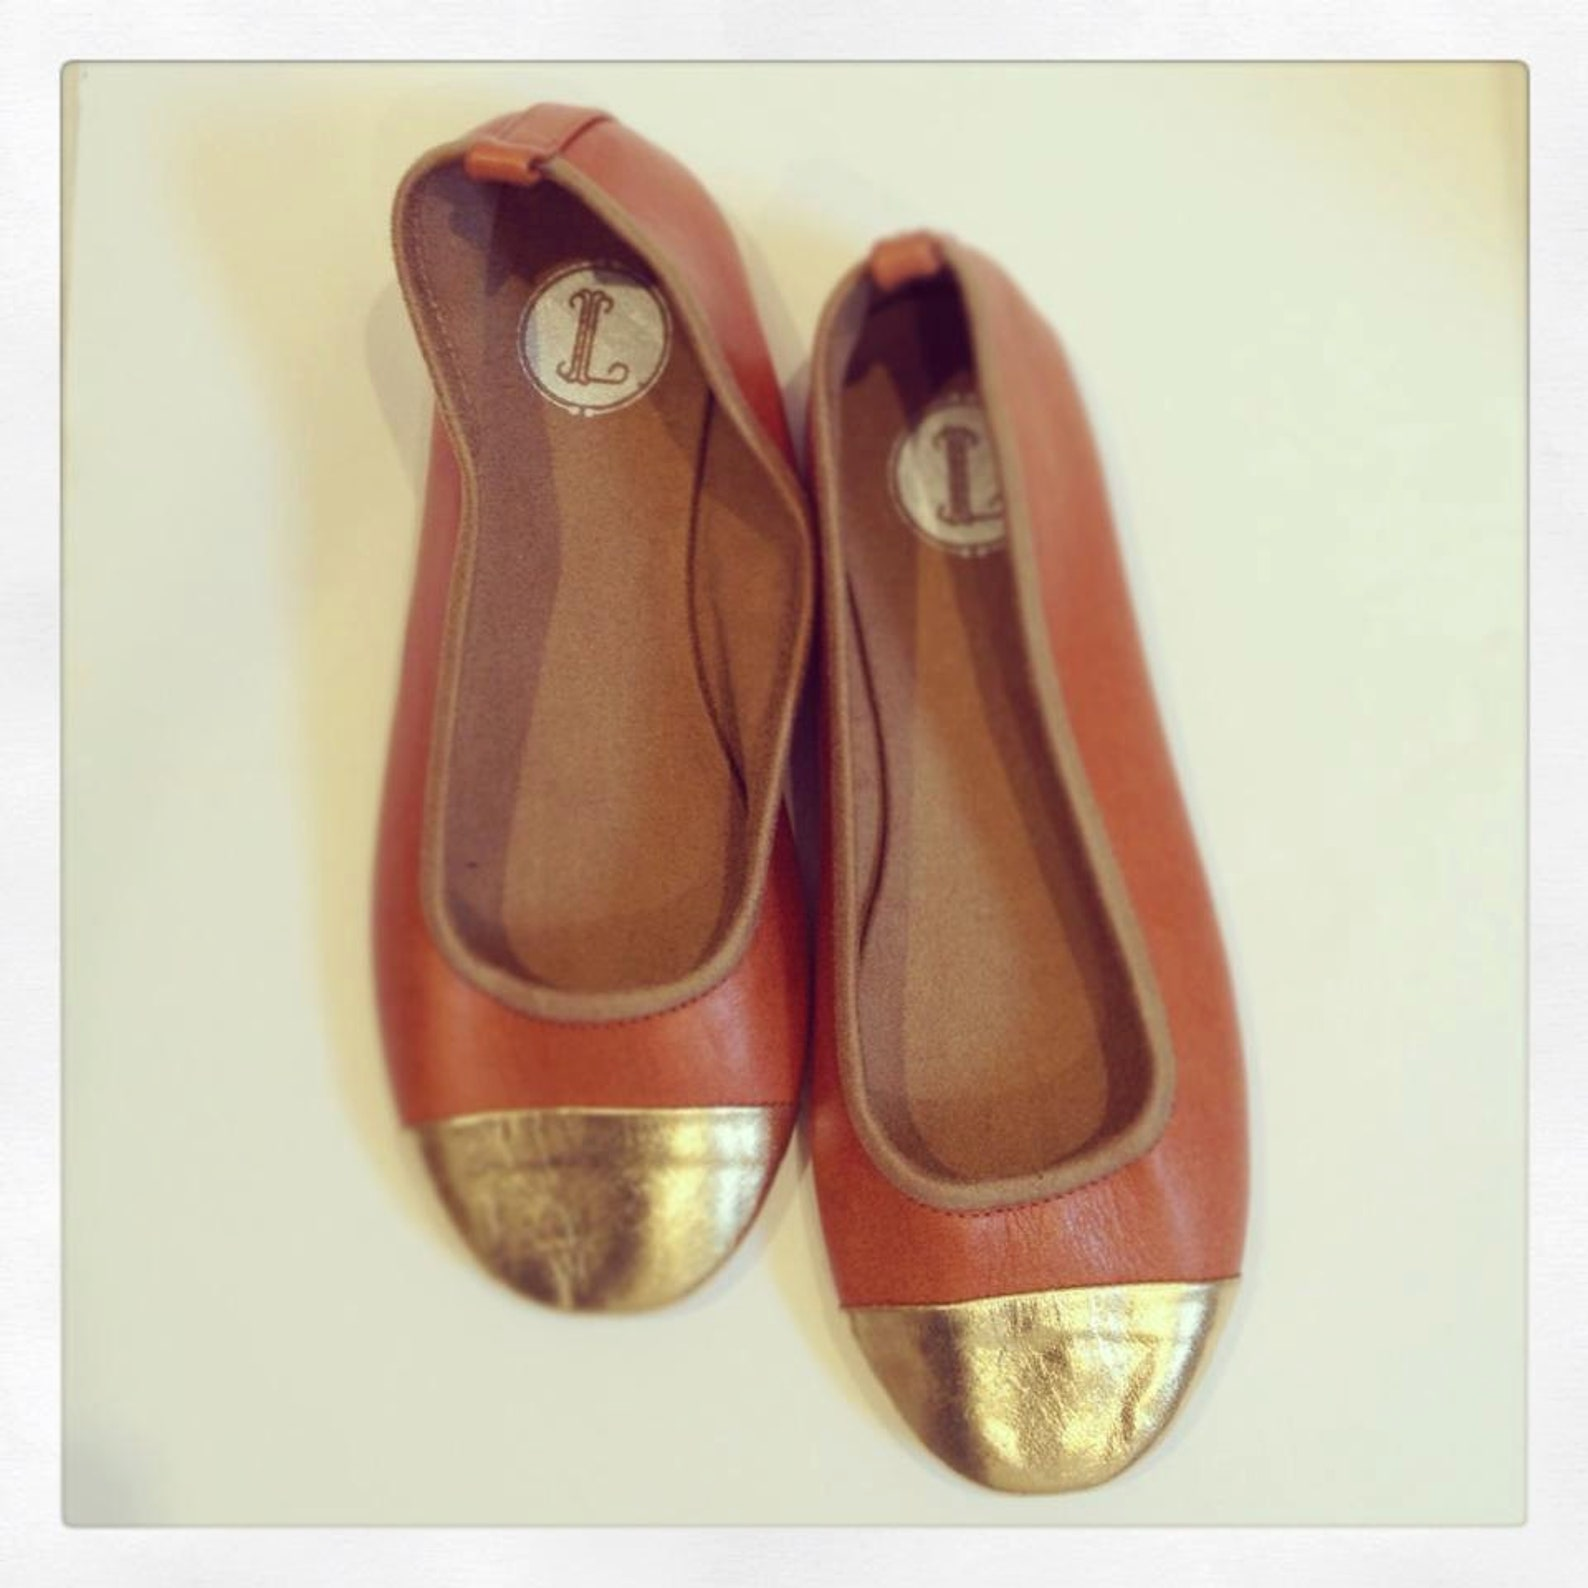 zoe. ballet flats - leather shoes - tan & gold leather. available in different sizes